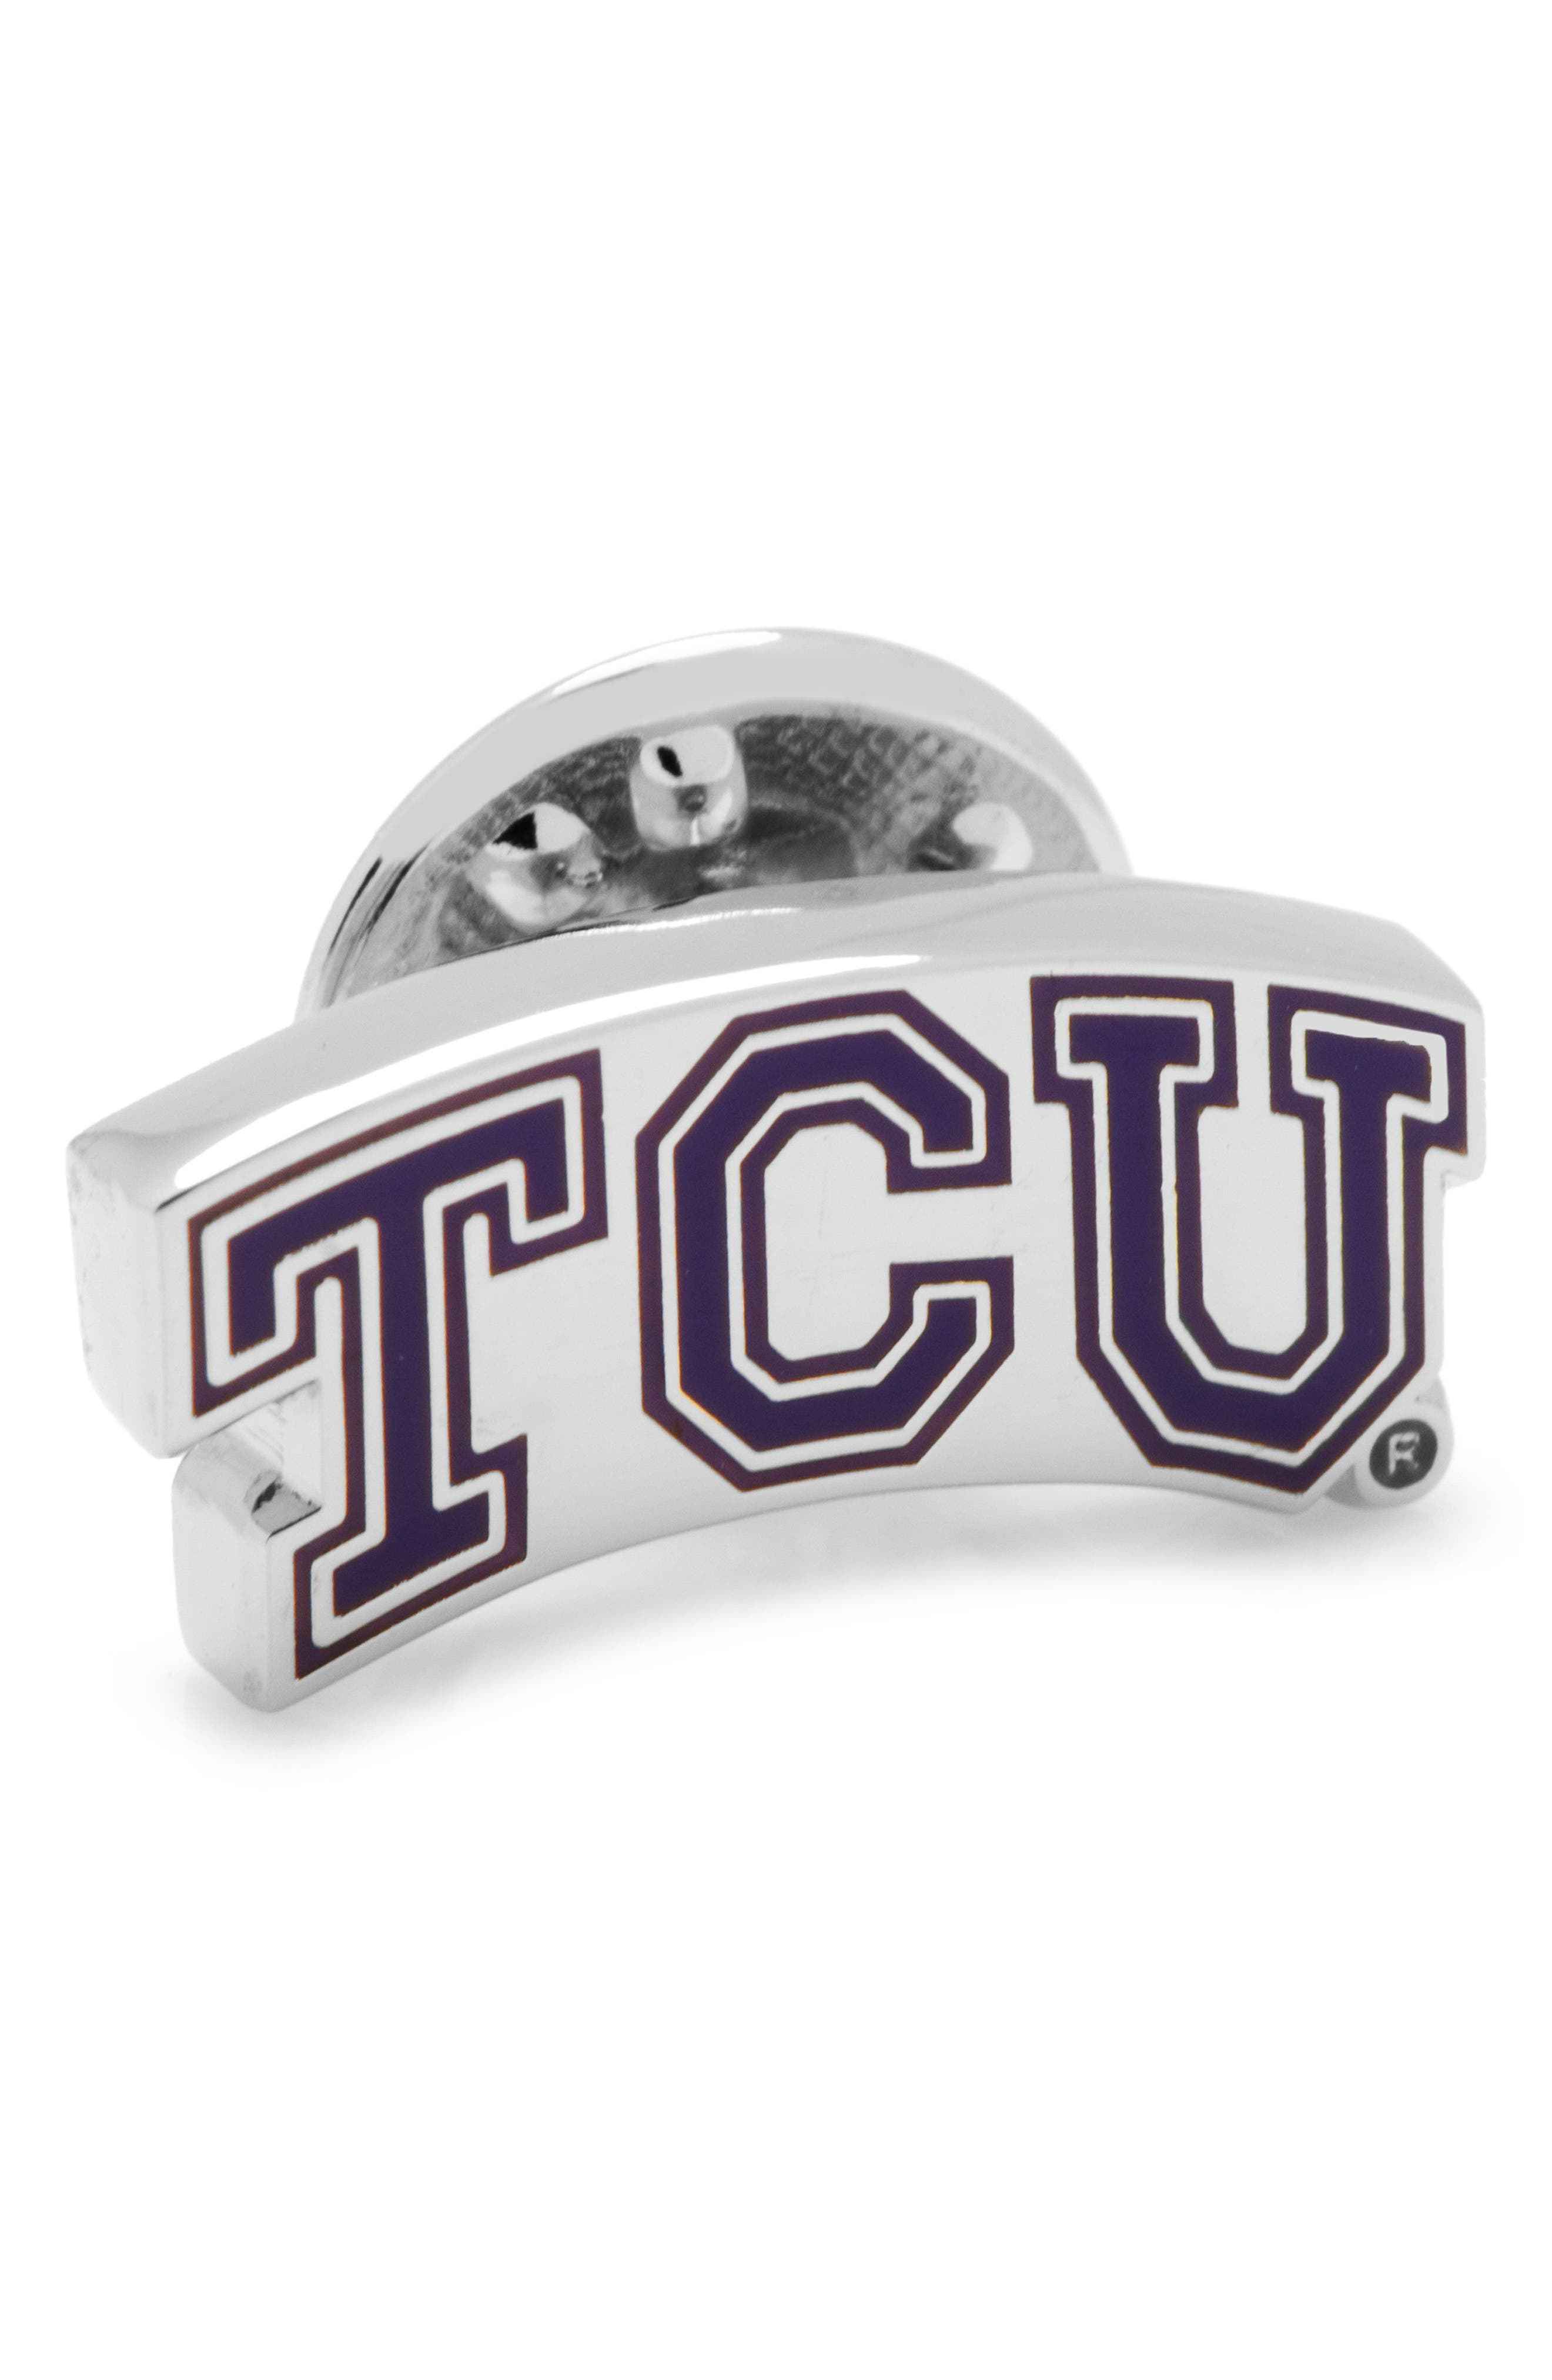 TCU Horned Frogs Lapel Pin,                         Main,                         color, PURPLE